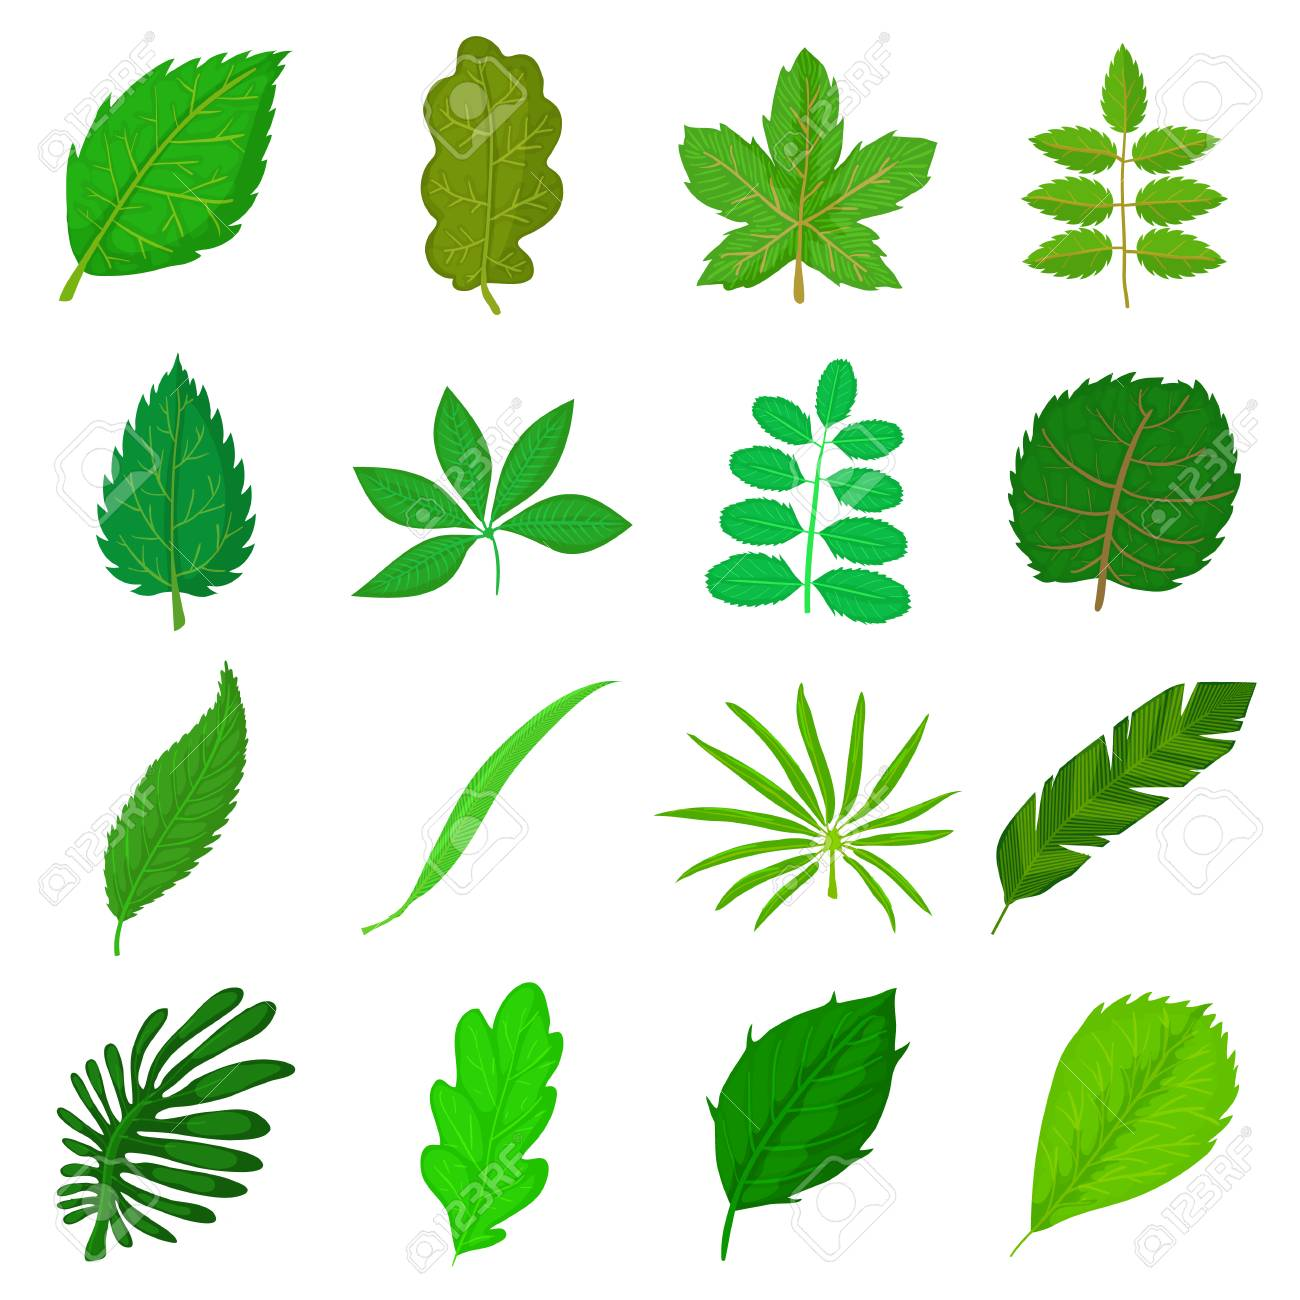 Green Leafs Icons Set Cartoon Style Royalty Free Cliparts Vectors And Stock Illustration Image 79190199